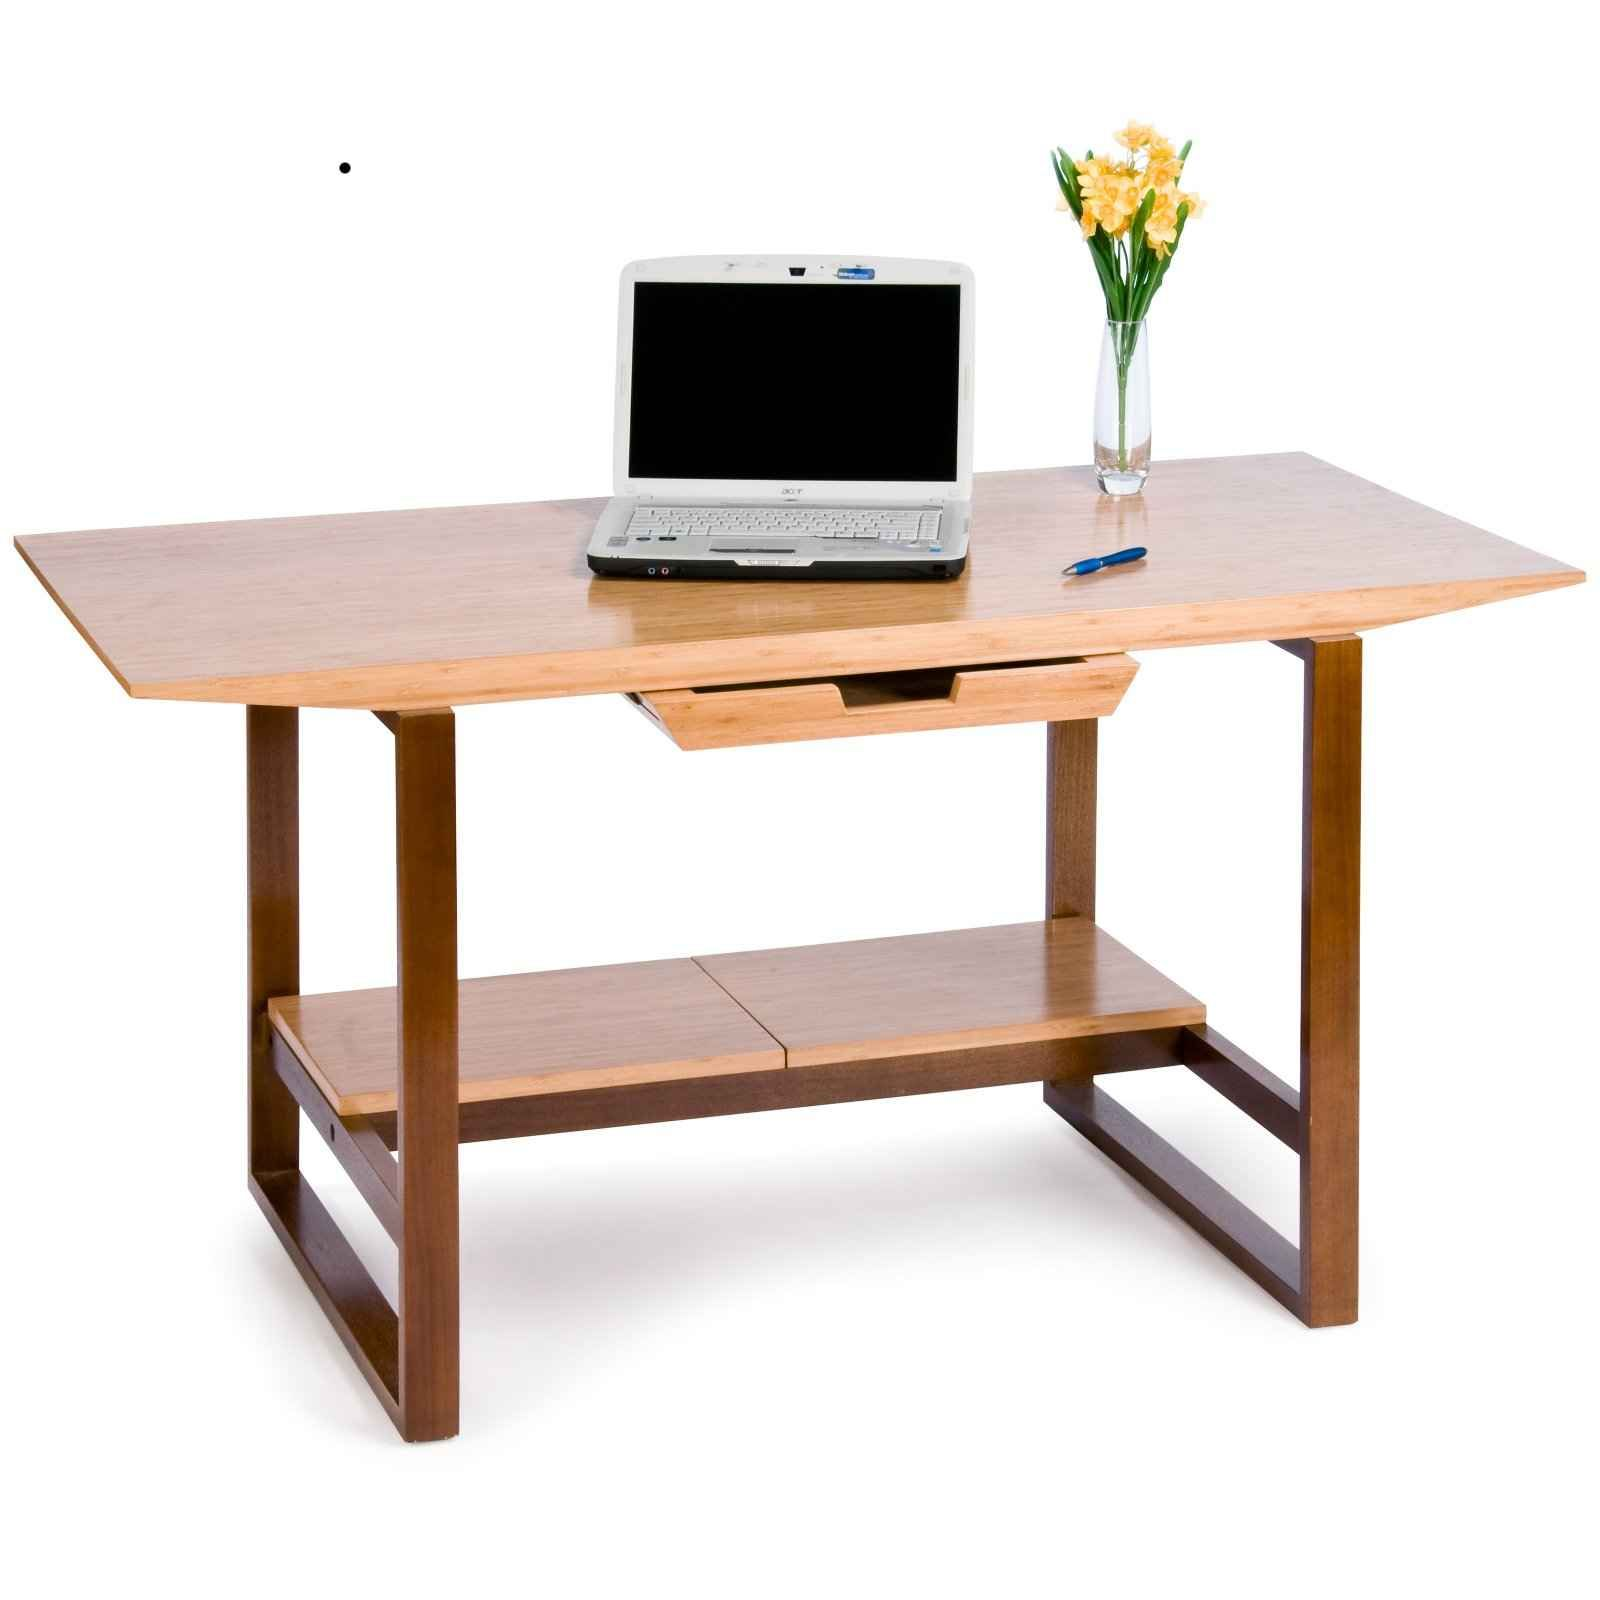 Breeze Wooden Legs Bamboo Laptop Computer Tray Desk